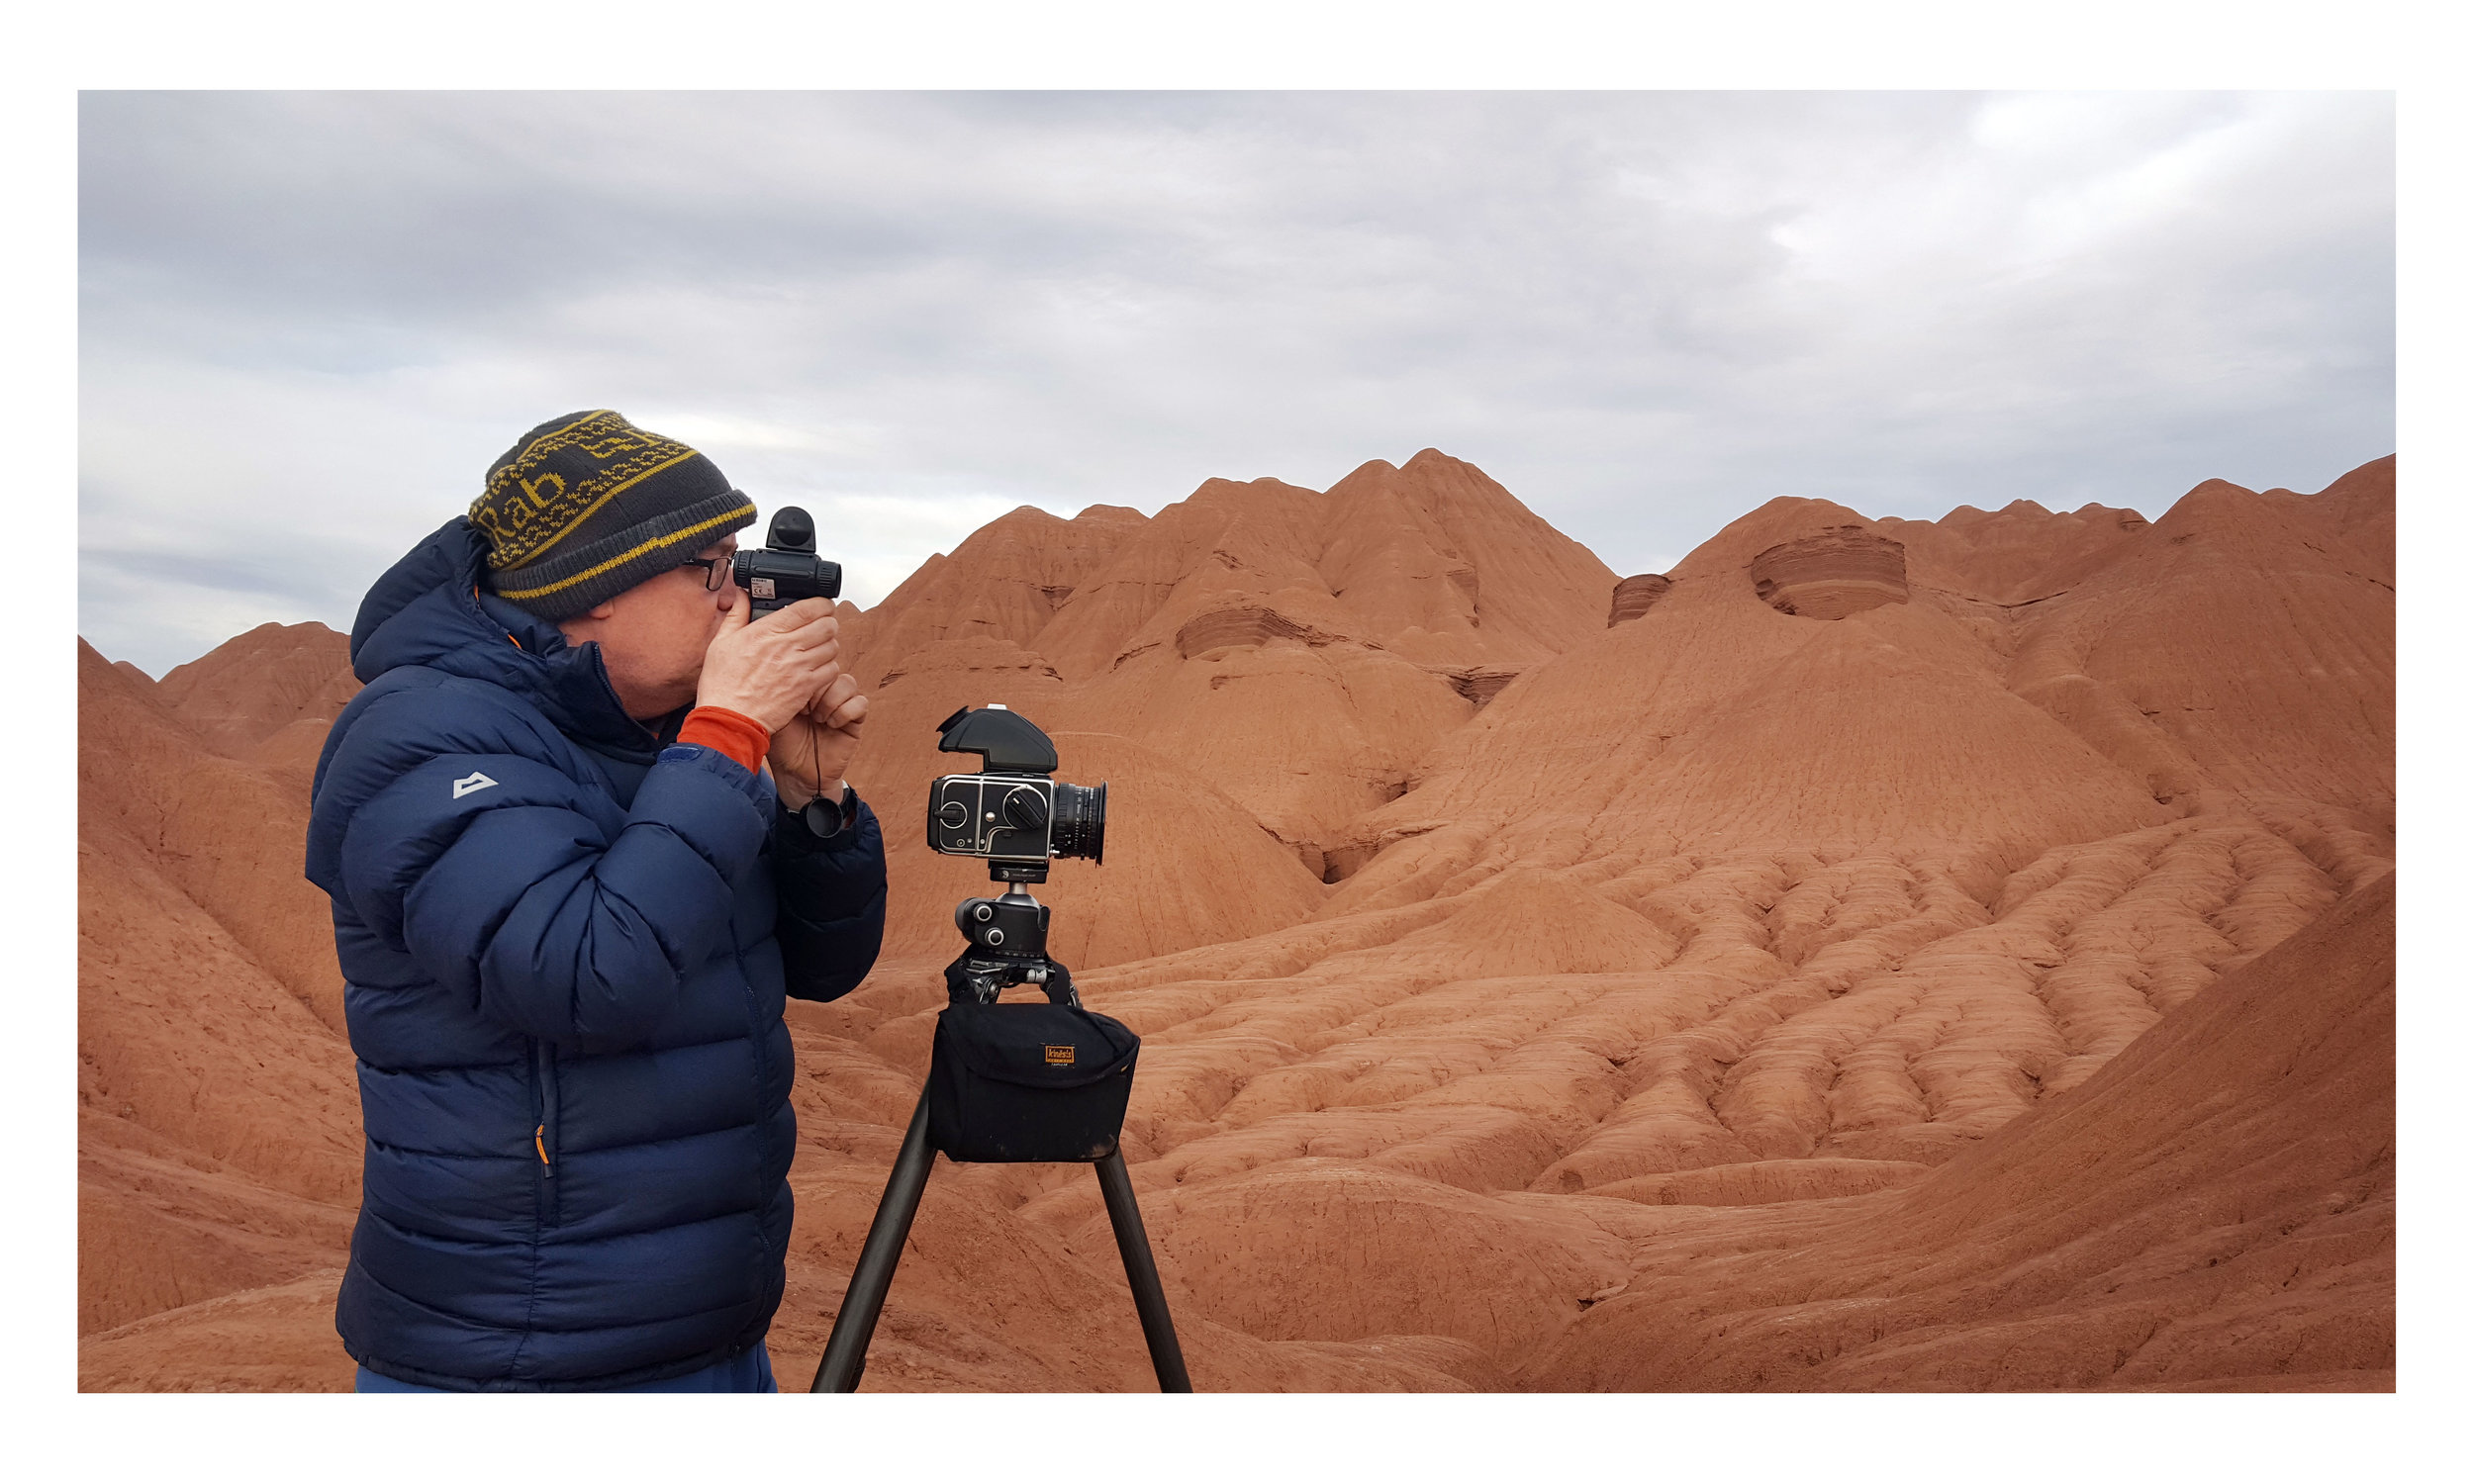 Spot-metering the desert in Argentina, April 2017